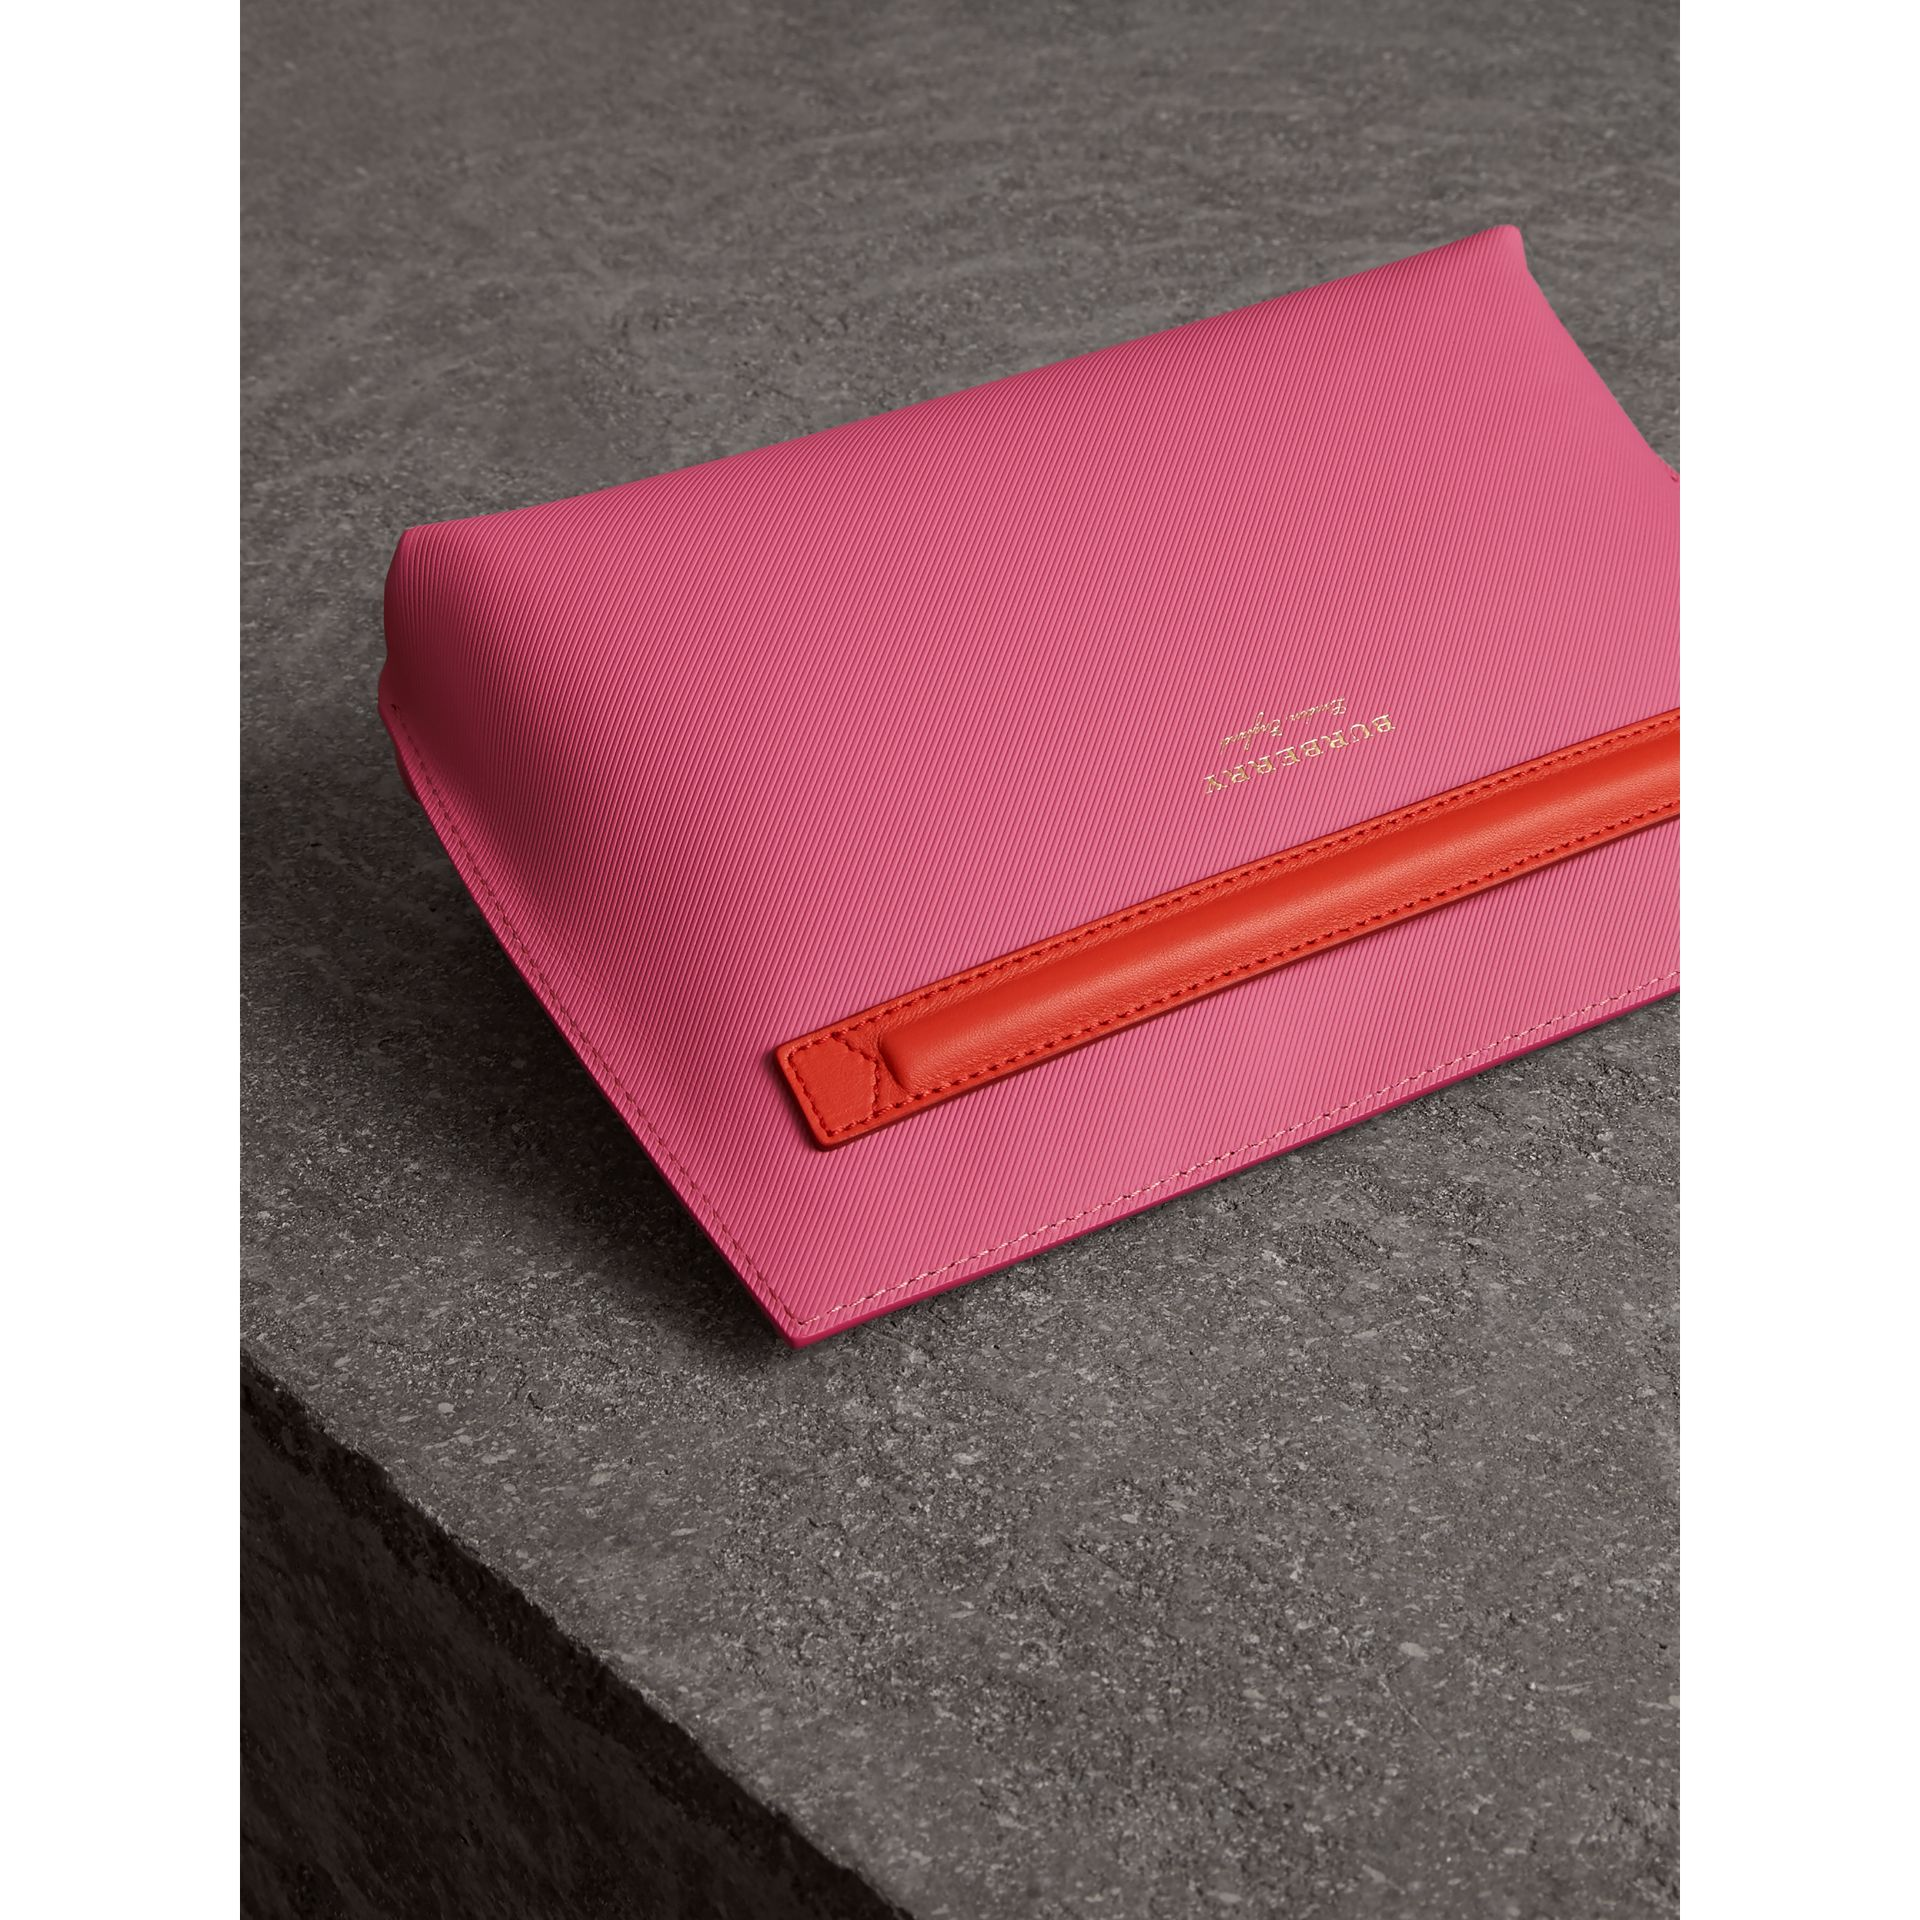 Two-tone Trench Leather Wristlet Pouch in Rose Pink - Women | Burberry Canada - gallery image 2